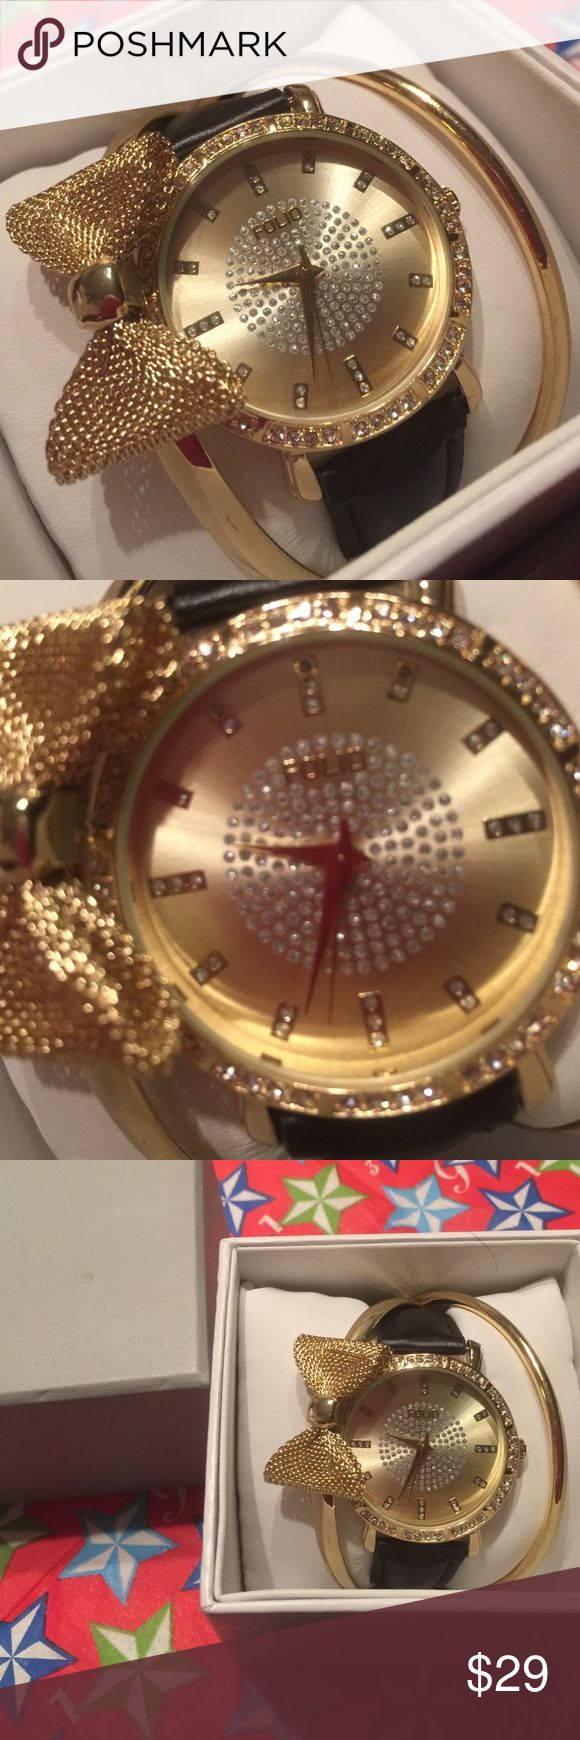 NWT 3-piece watch and bangles The watch face has stones. There are two bangles and one of them has a bow. They are all attached so I couldn't arrange them. Bundle and get $3 off. Can't be combined with other offers. Smoke free house. Accessories Watches